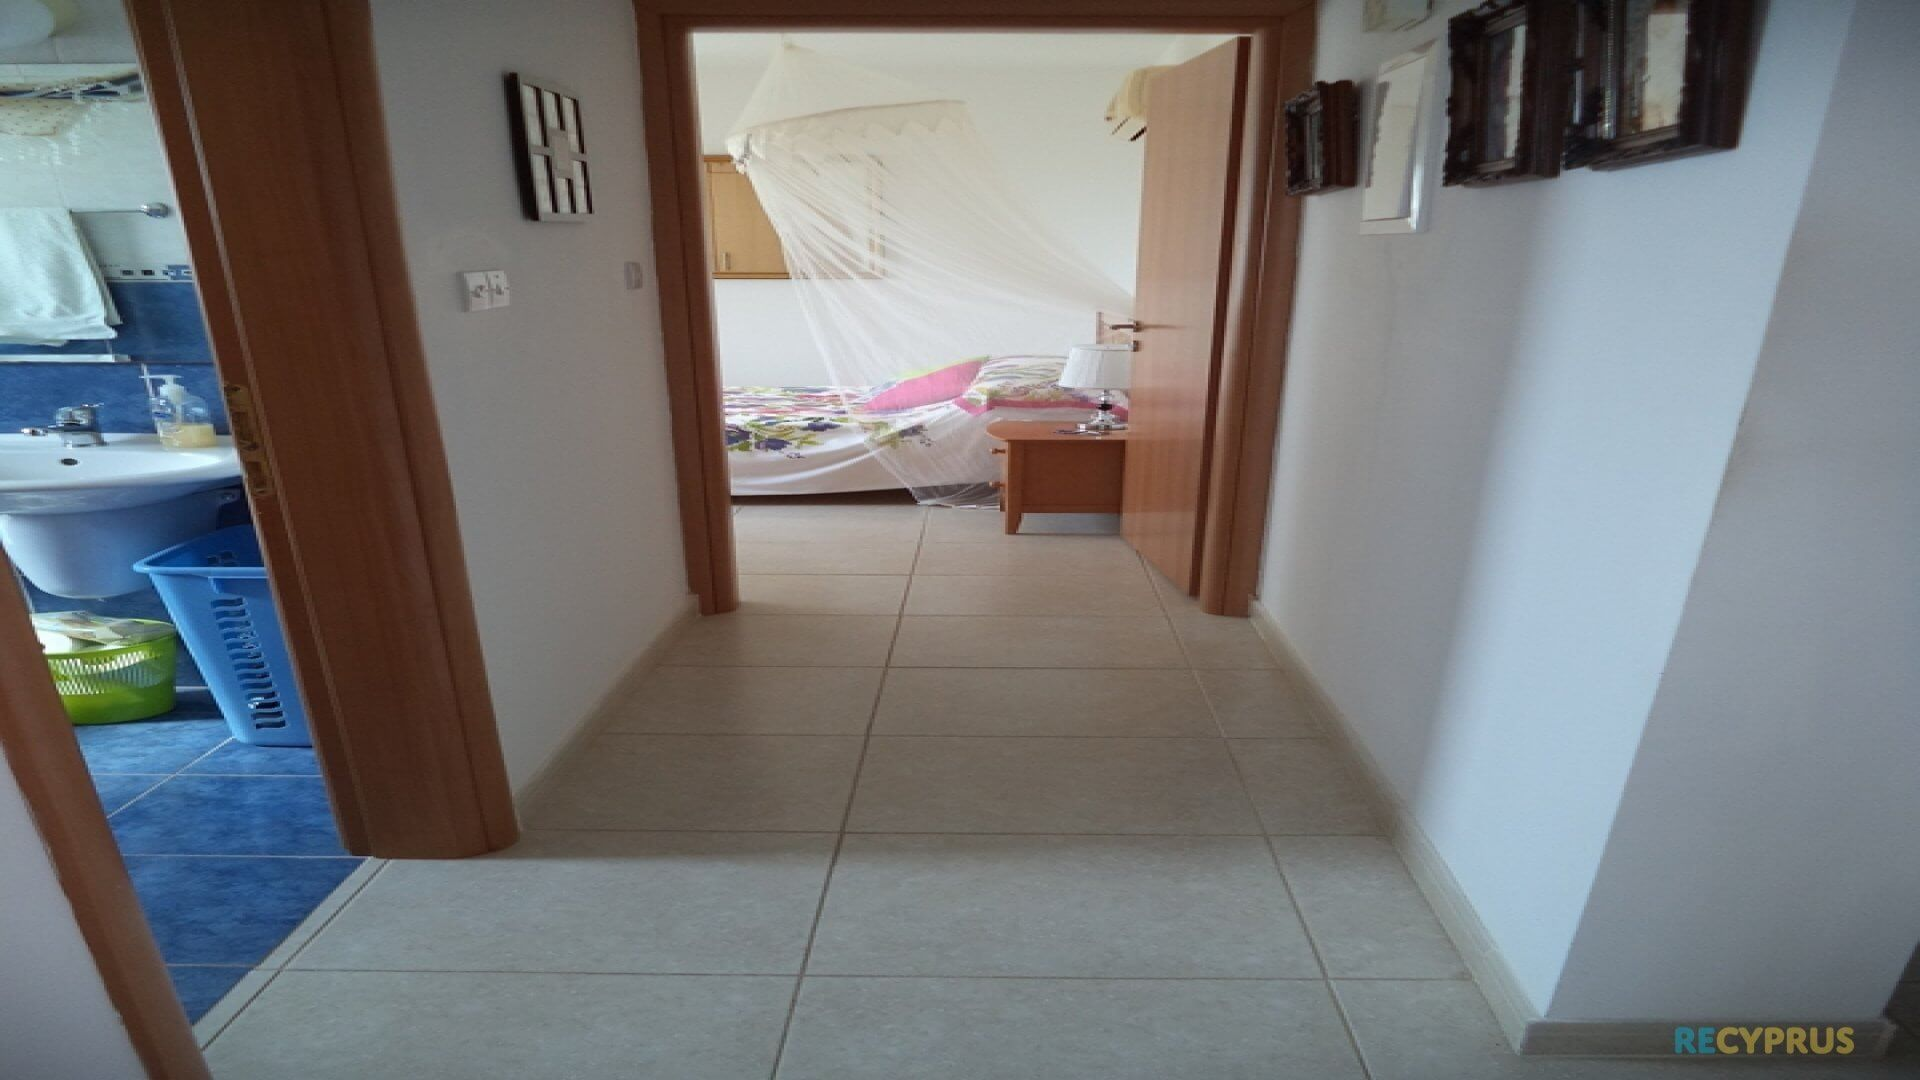 Apartment for sale Kapparis Famagusta Cyprus 7 3463